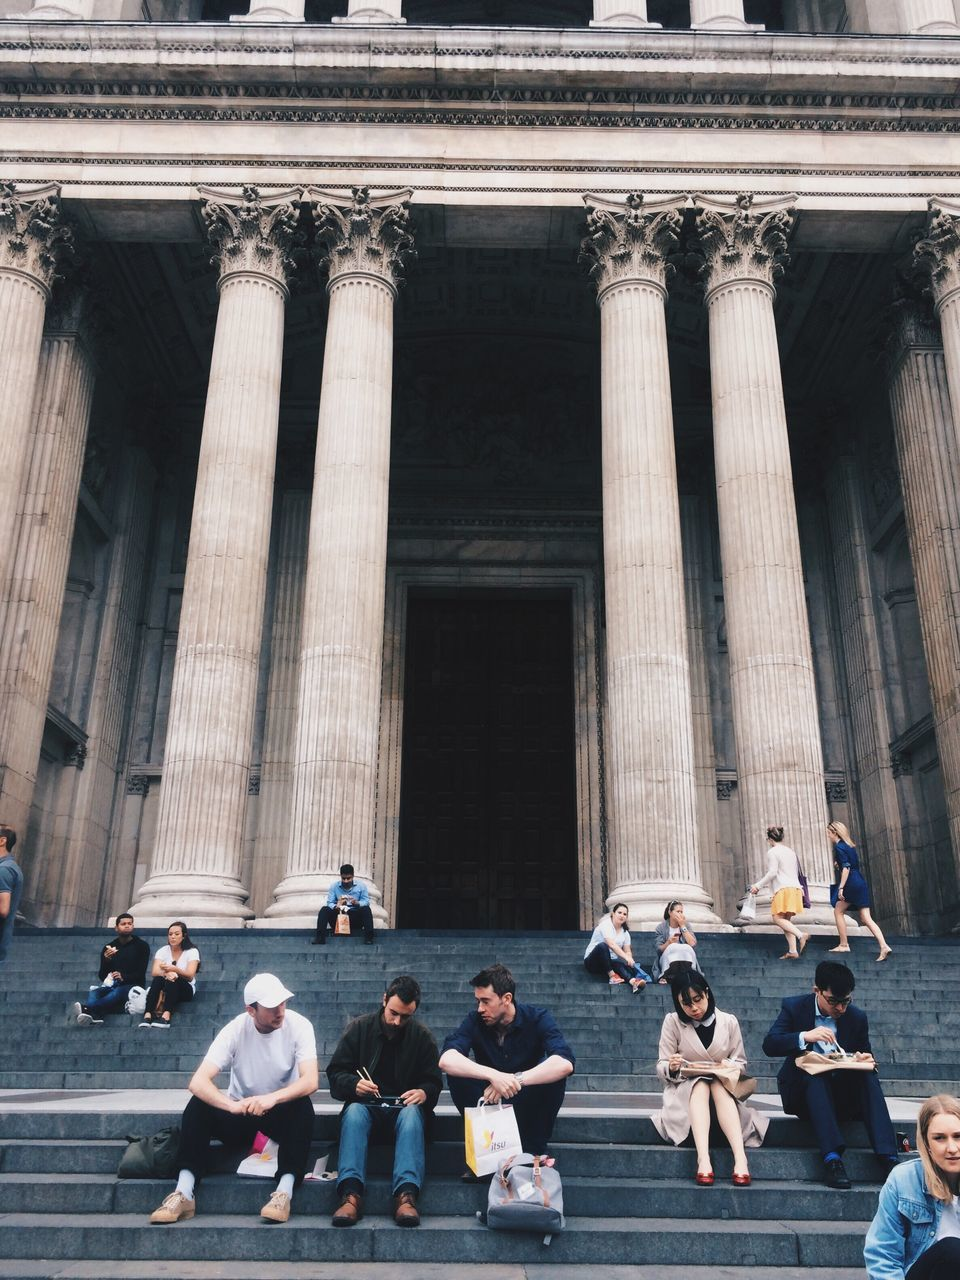 large group of people, real people, women, men, architecture, travel destinations, built structure, building exterior, architectural column, statue, tourism, mixed age range, lifestyles, outdoors, history, leisure activity, sculpture, day, sitting, group of people, city, sky, people, adult, adults only